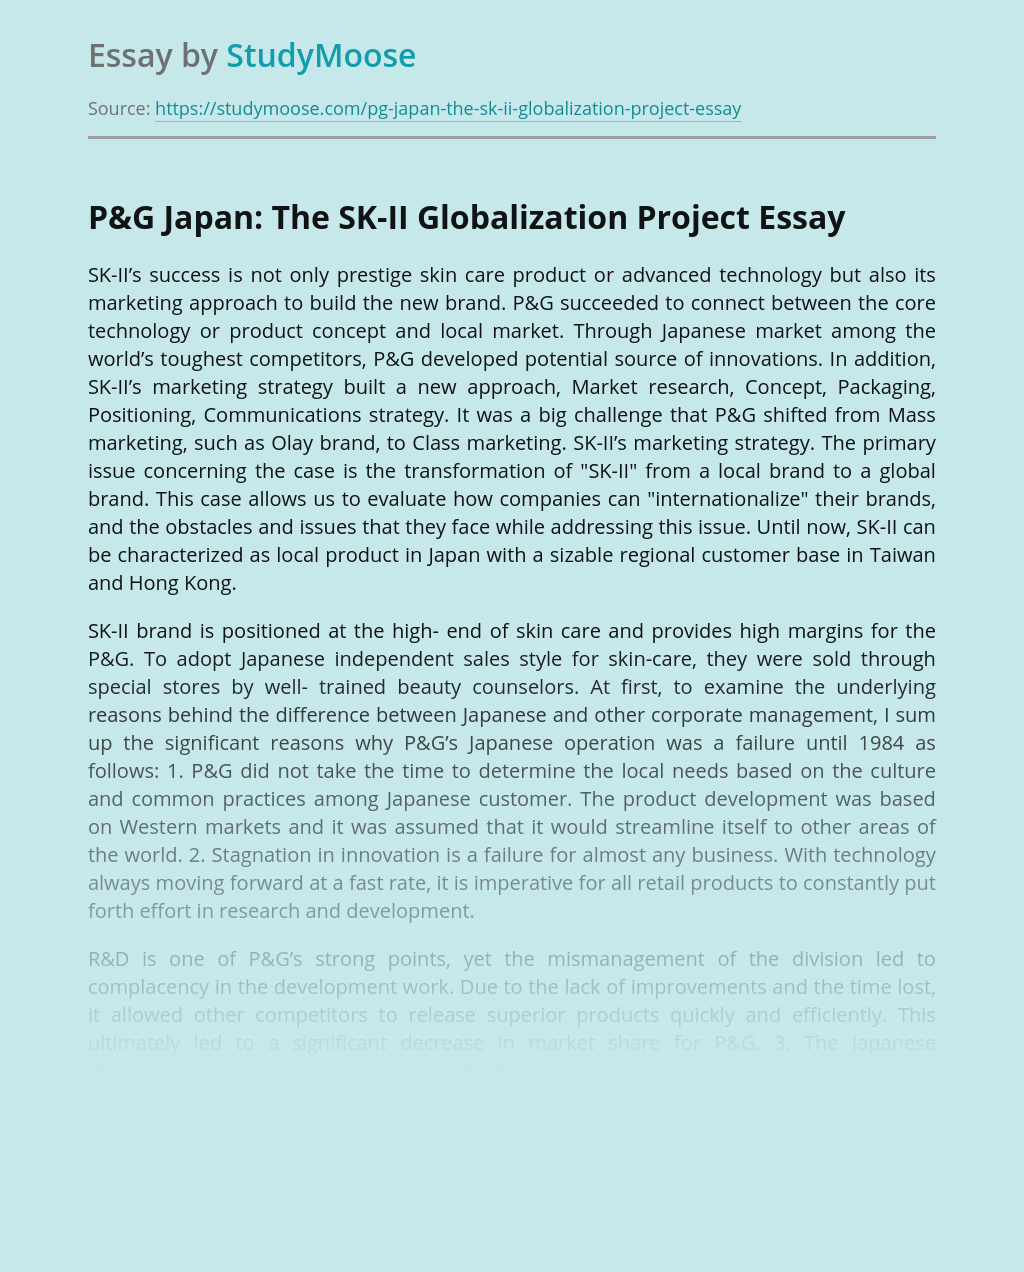 P&G Japan: The SK-II Globalization Project